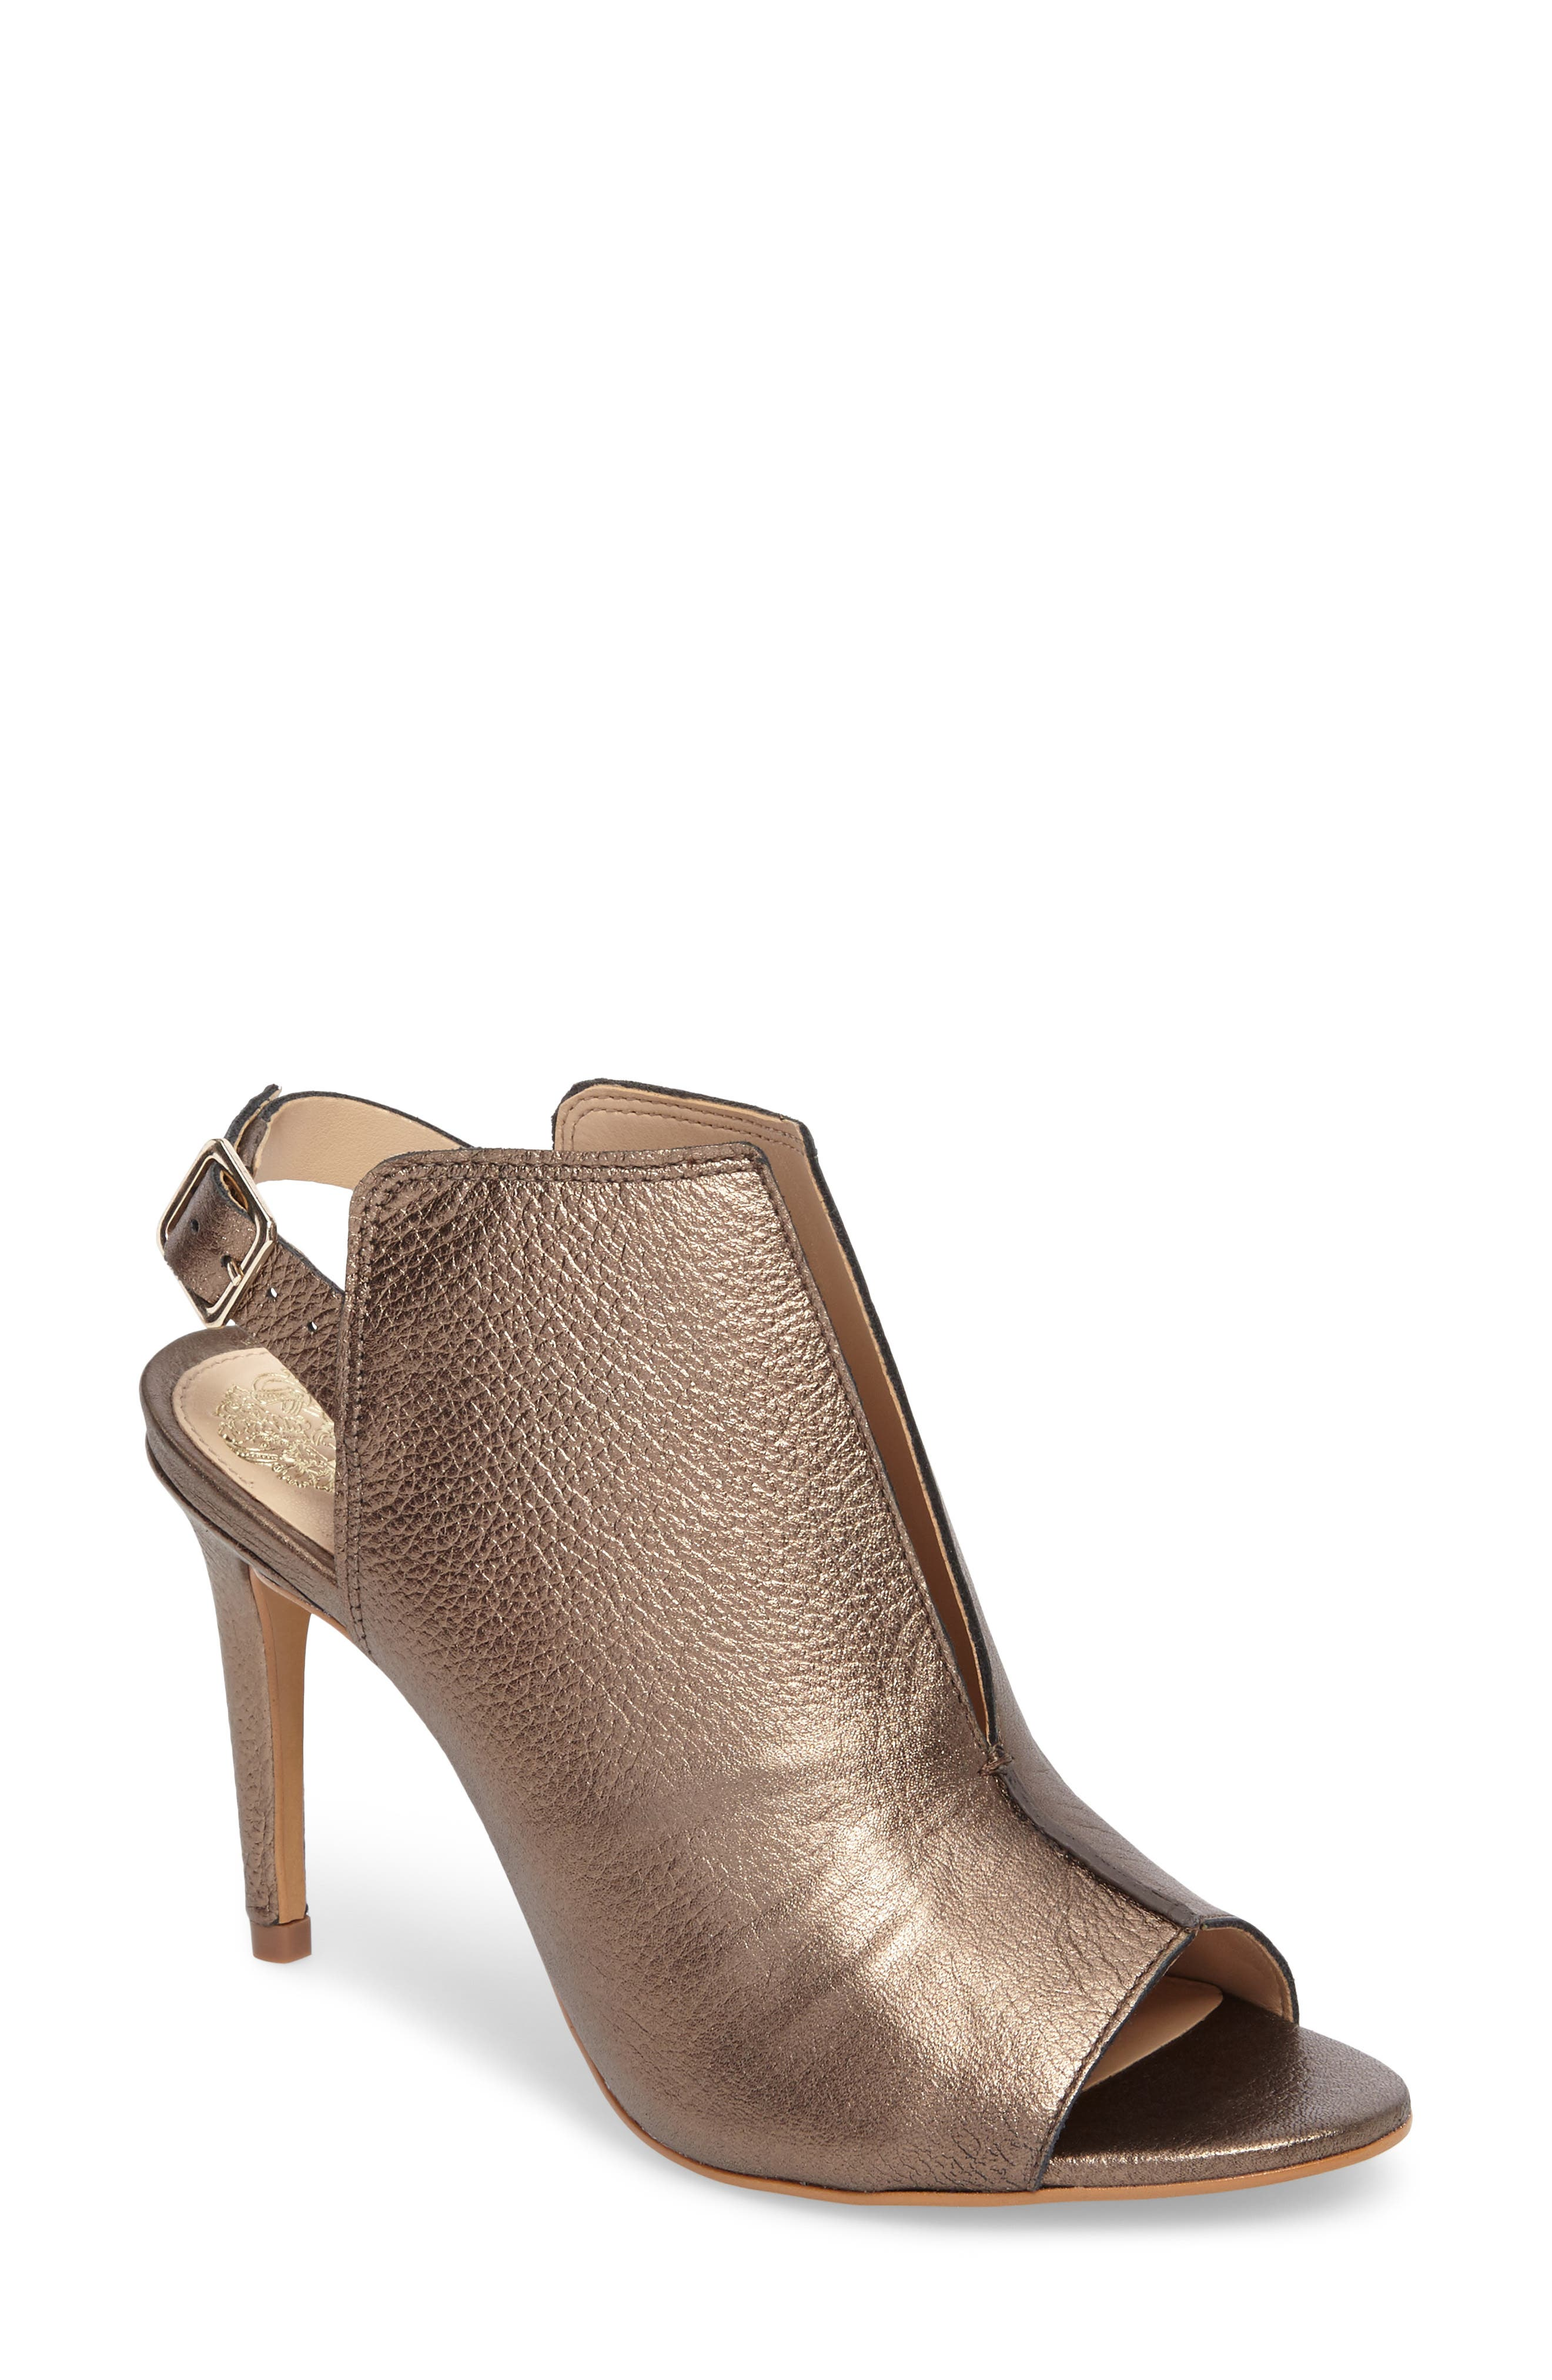 Alternate Image 1 Selected - Vince Camuto Catina Sandal (Women)